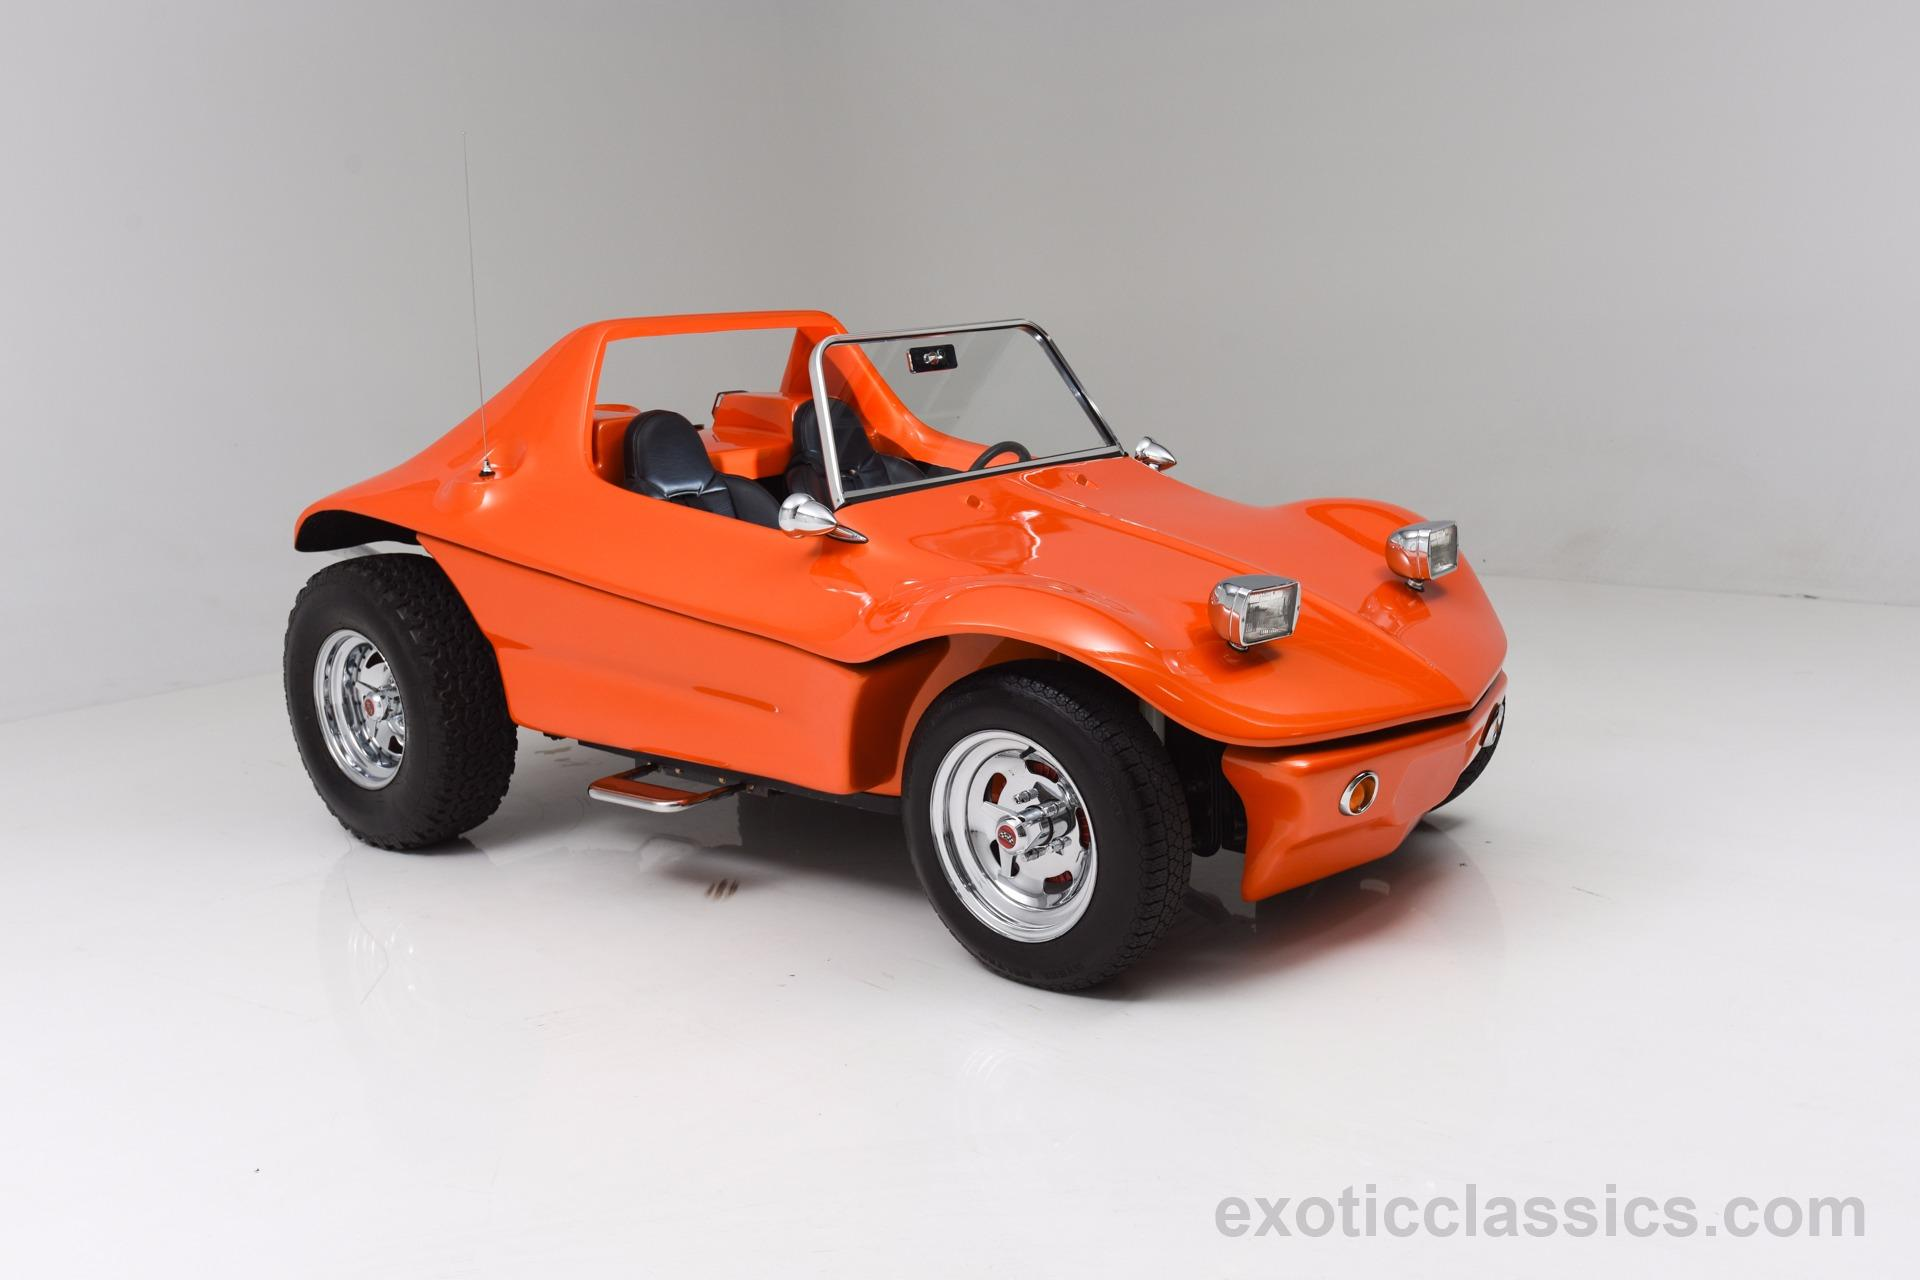 Car Fax Used Cars >> 1966 Dune Buggy - Champion Motors International l Luxury Classic Vehicle Dealership New York l ...